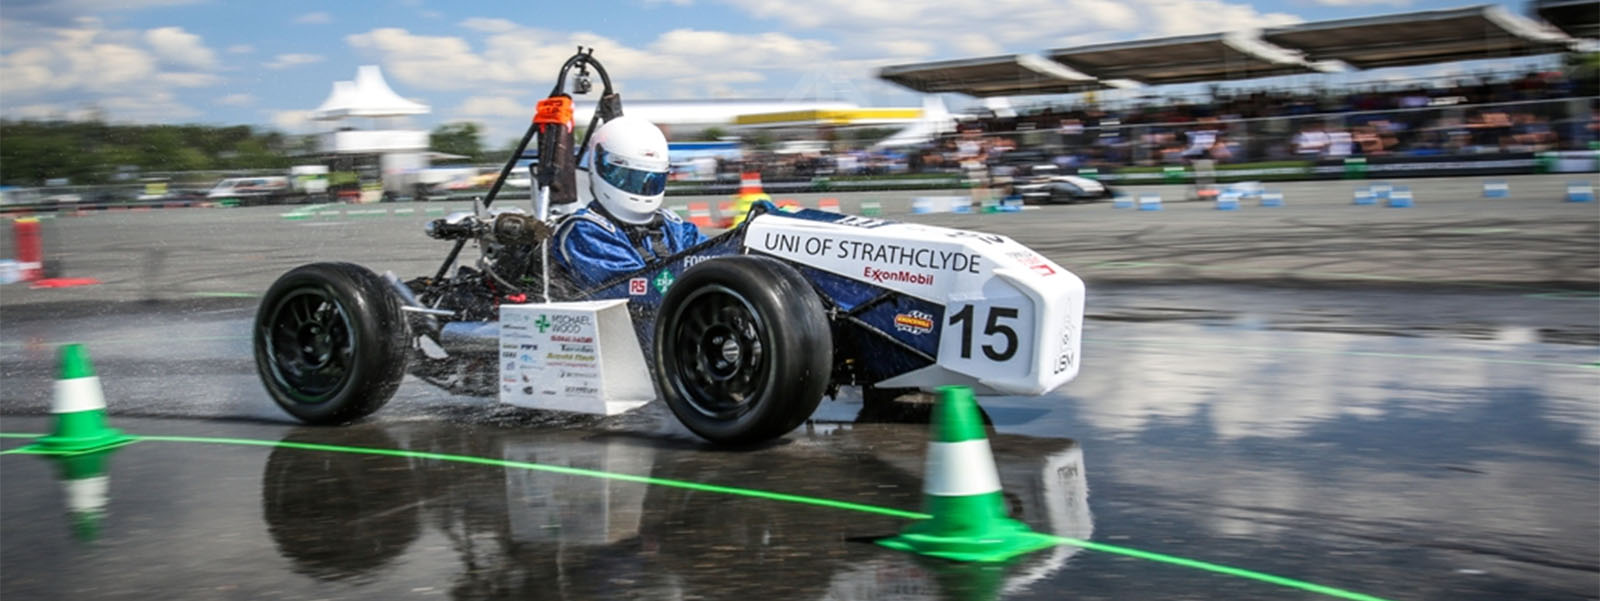 Formula student car on the race track